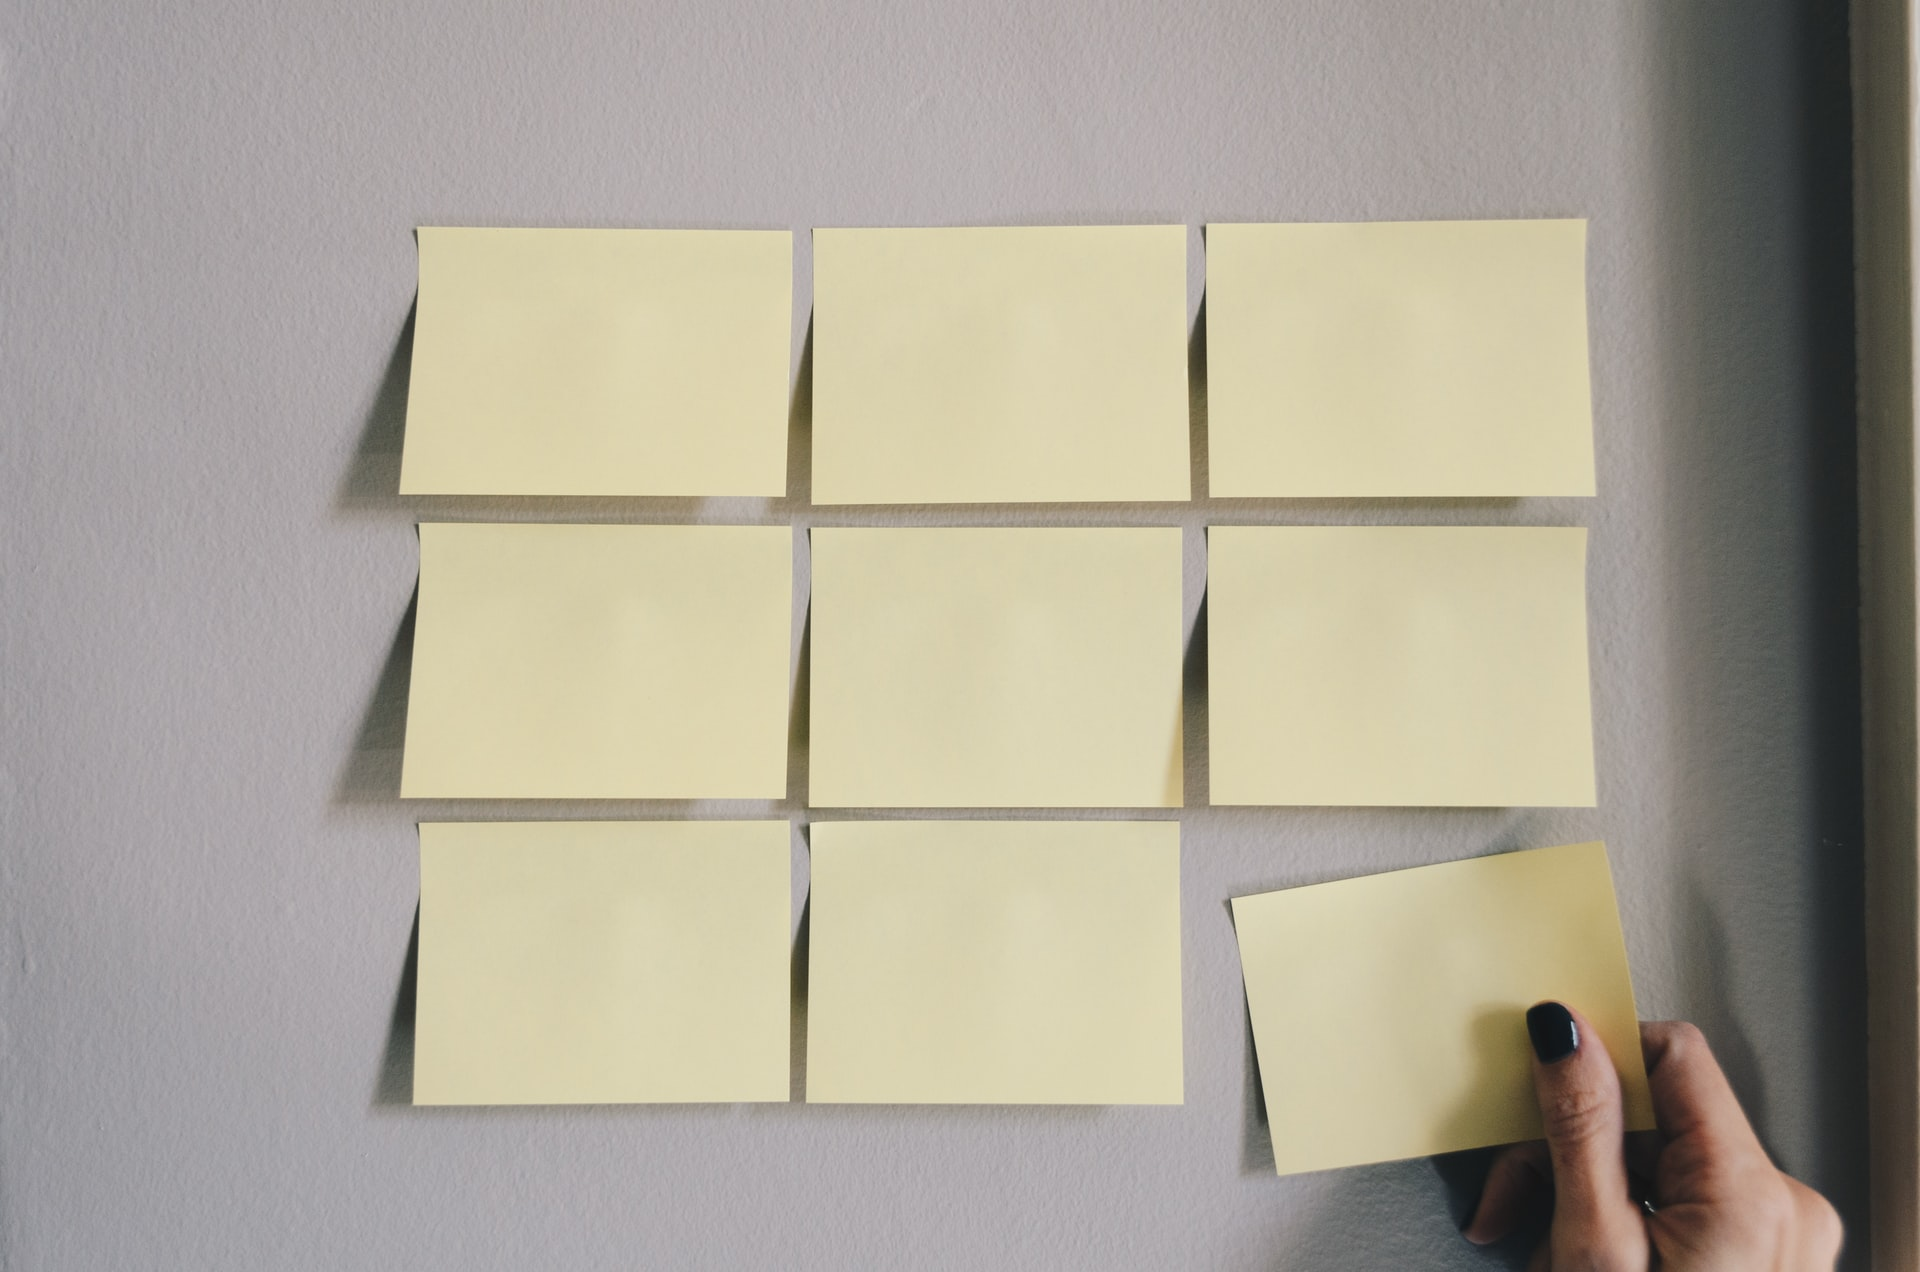 Wall with 3 by 3 yellow sticky notes